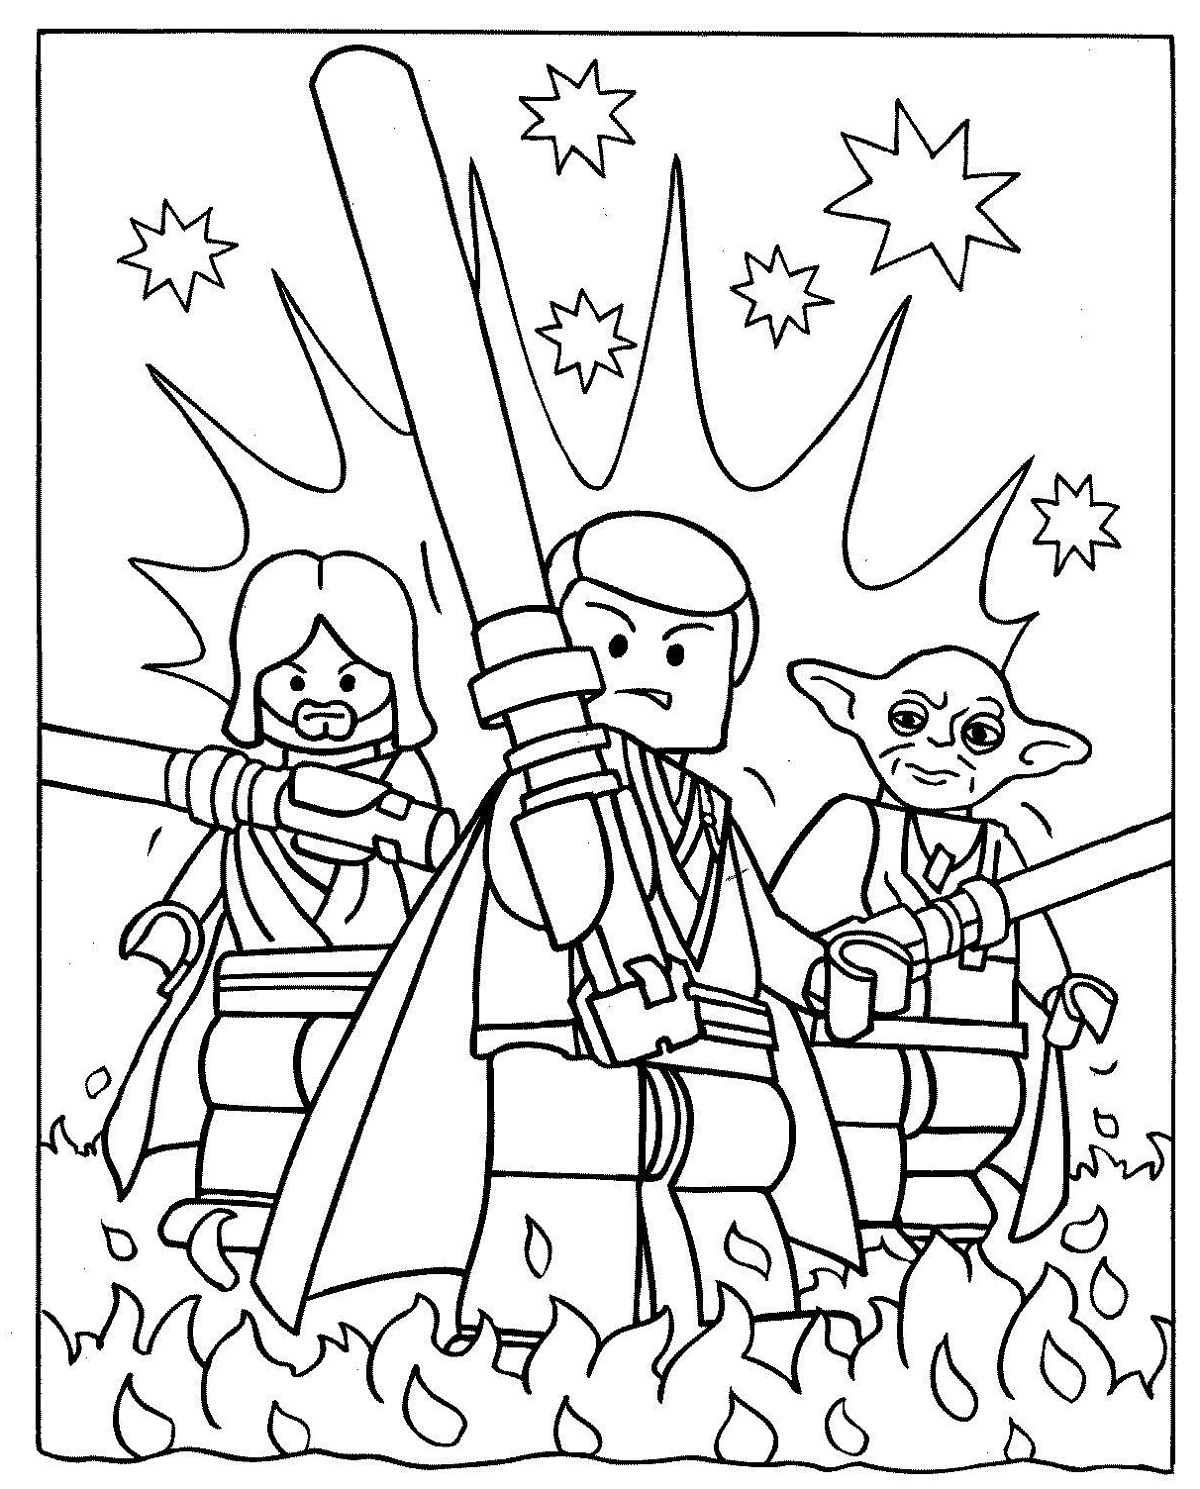 lego star wars colouring lego star wars coloring pages k5 worksheets lego colouring wars star